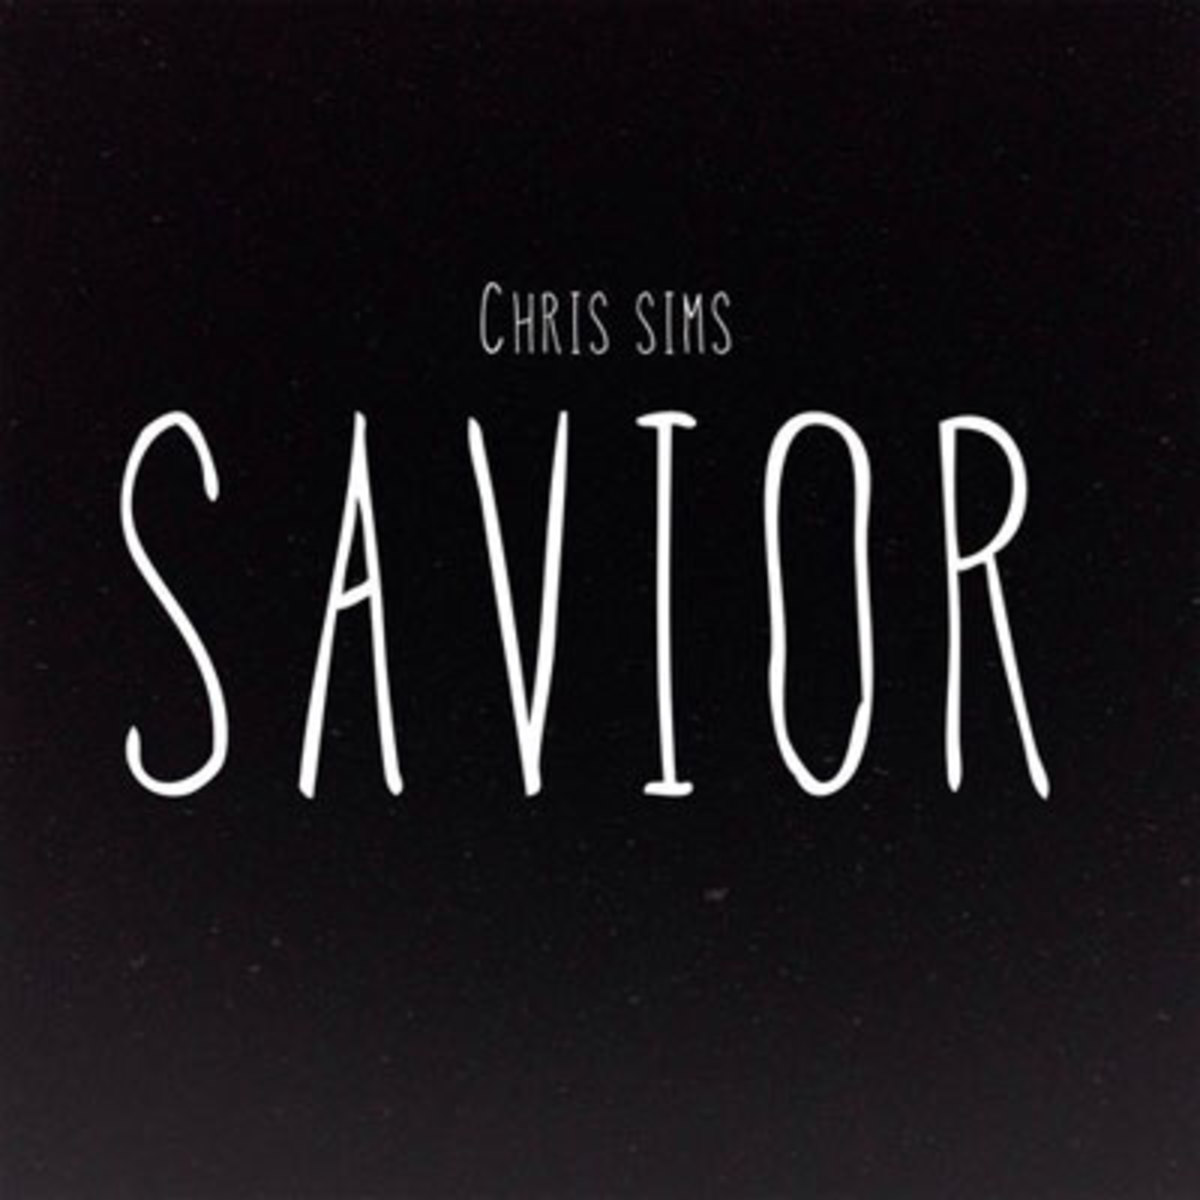 chrissims-savior.jpg